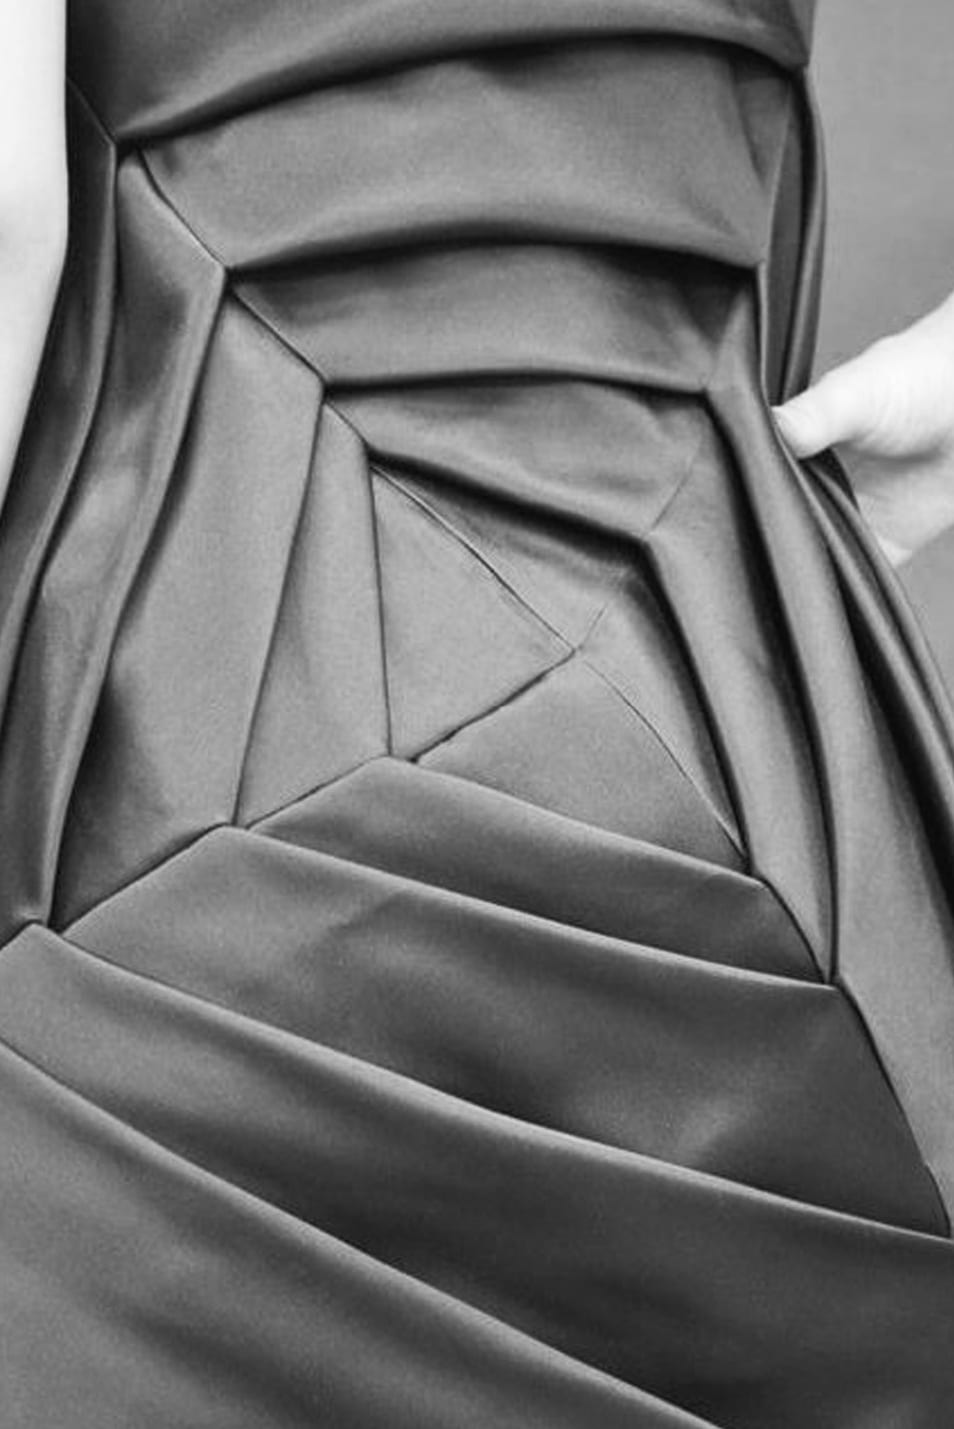 How to Make Origami Dress - Easy Tutorial for Beginners - Paper ... | 1429x954